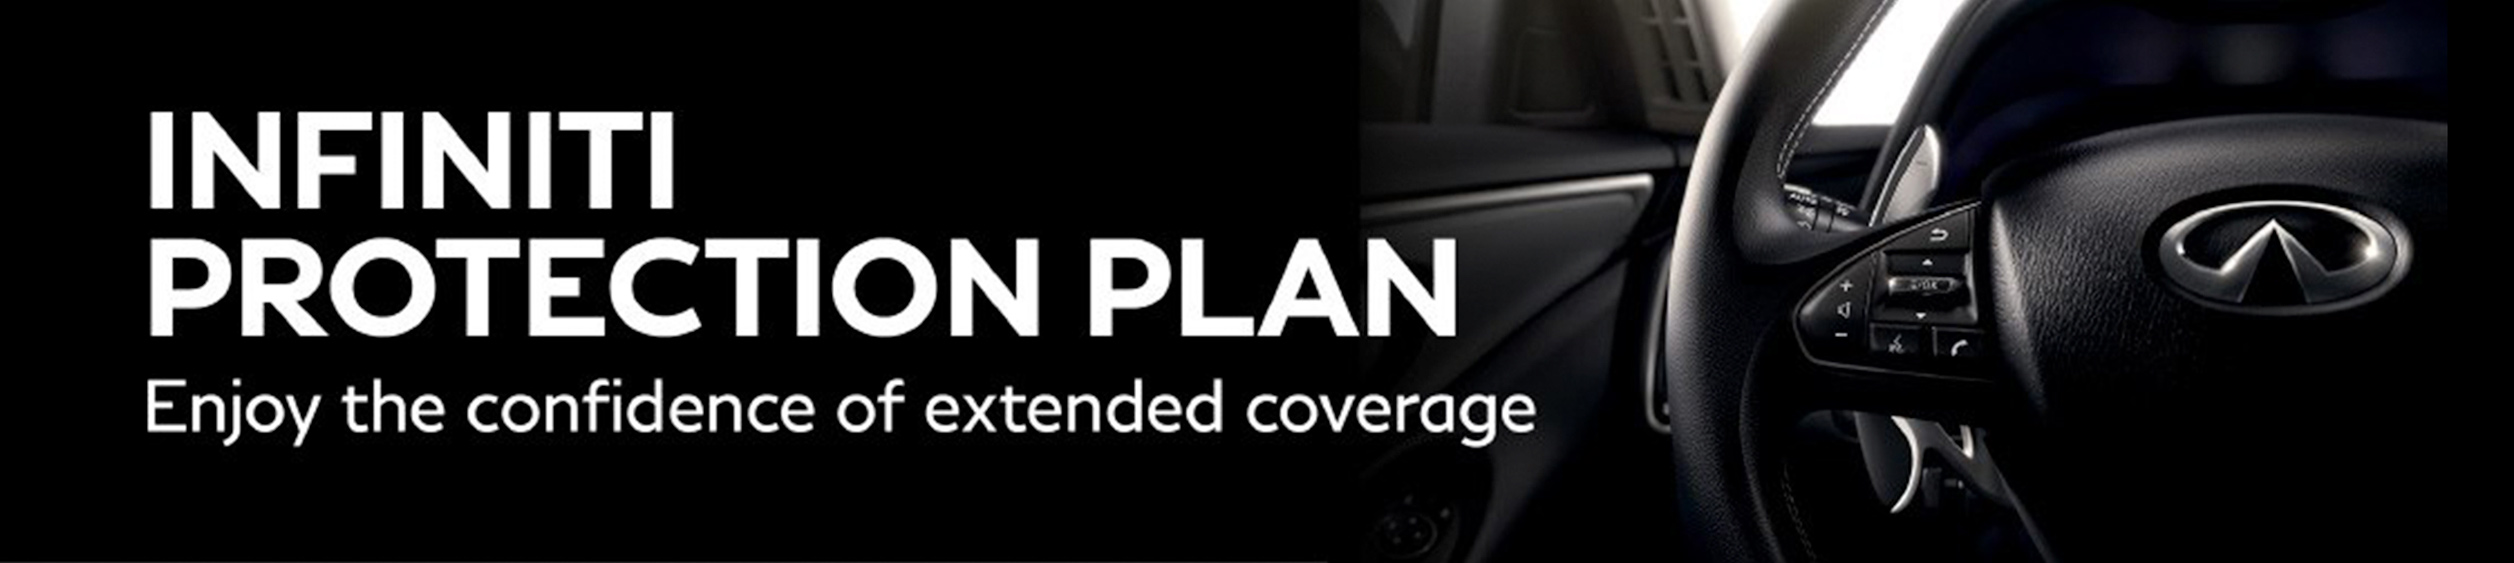 Infiniti Protection Plan